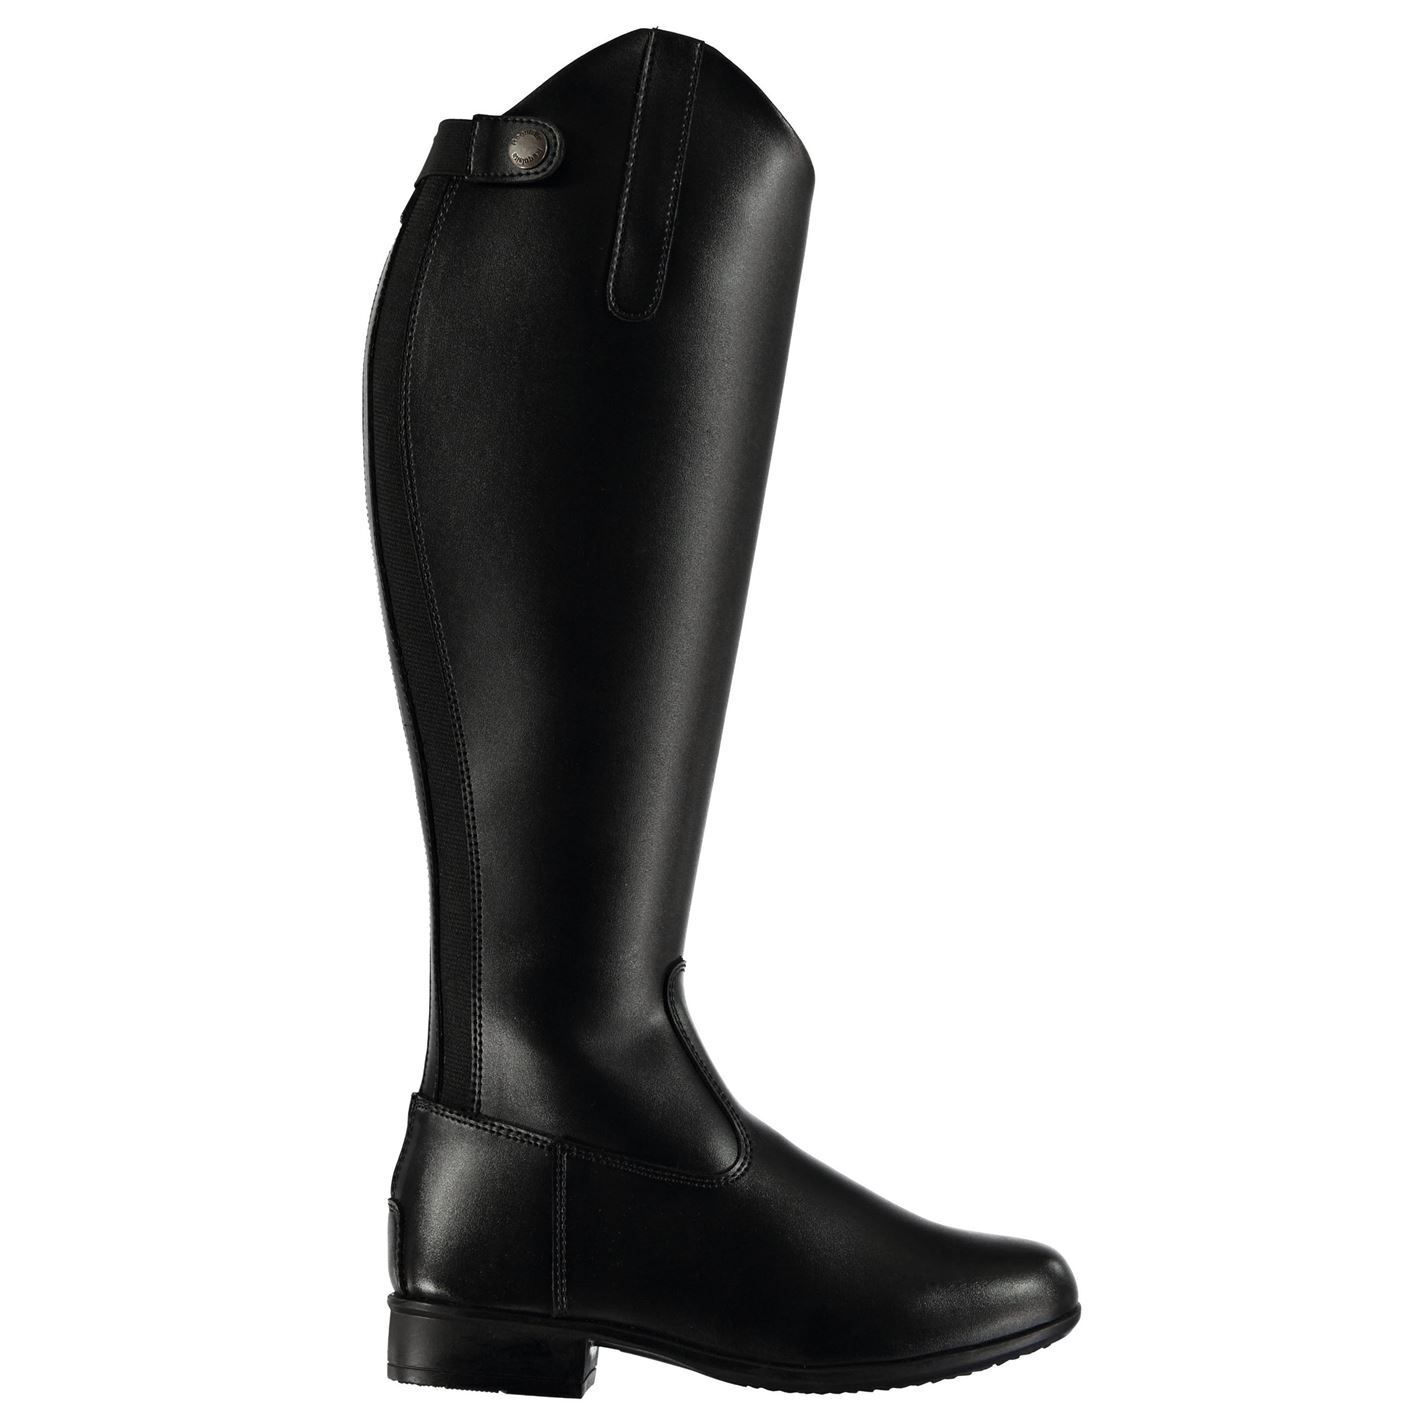 Requisite femmes Foxhill Riding bottes Long Zip Water Resistant Hacking Schooling